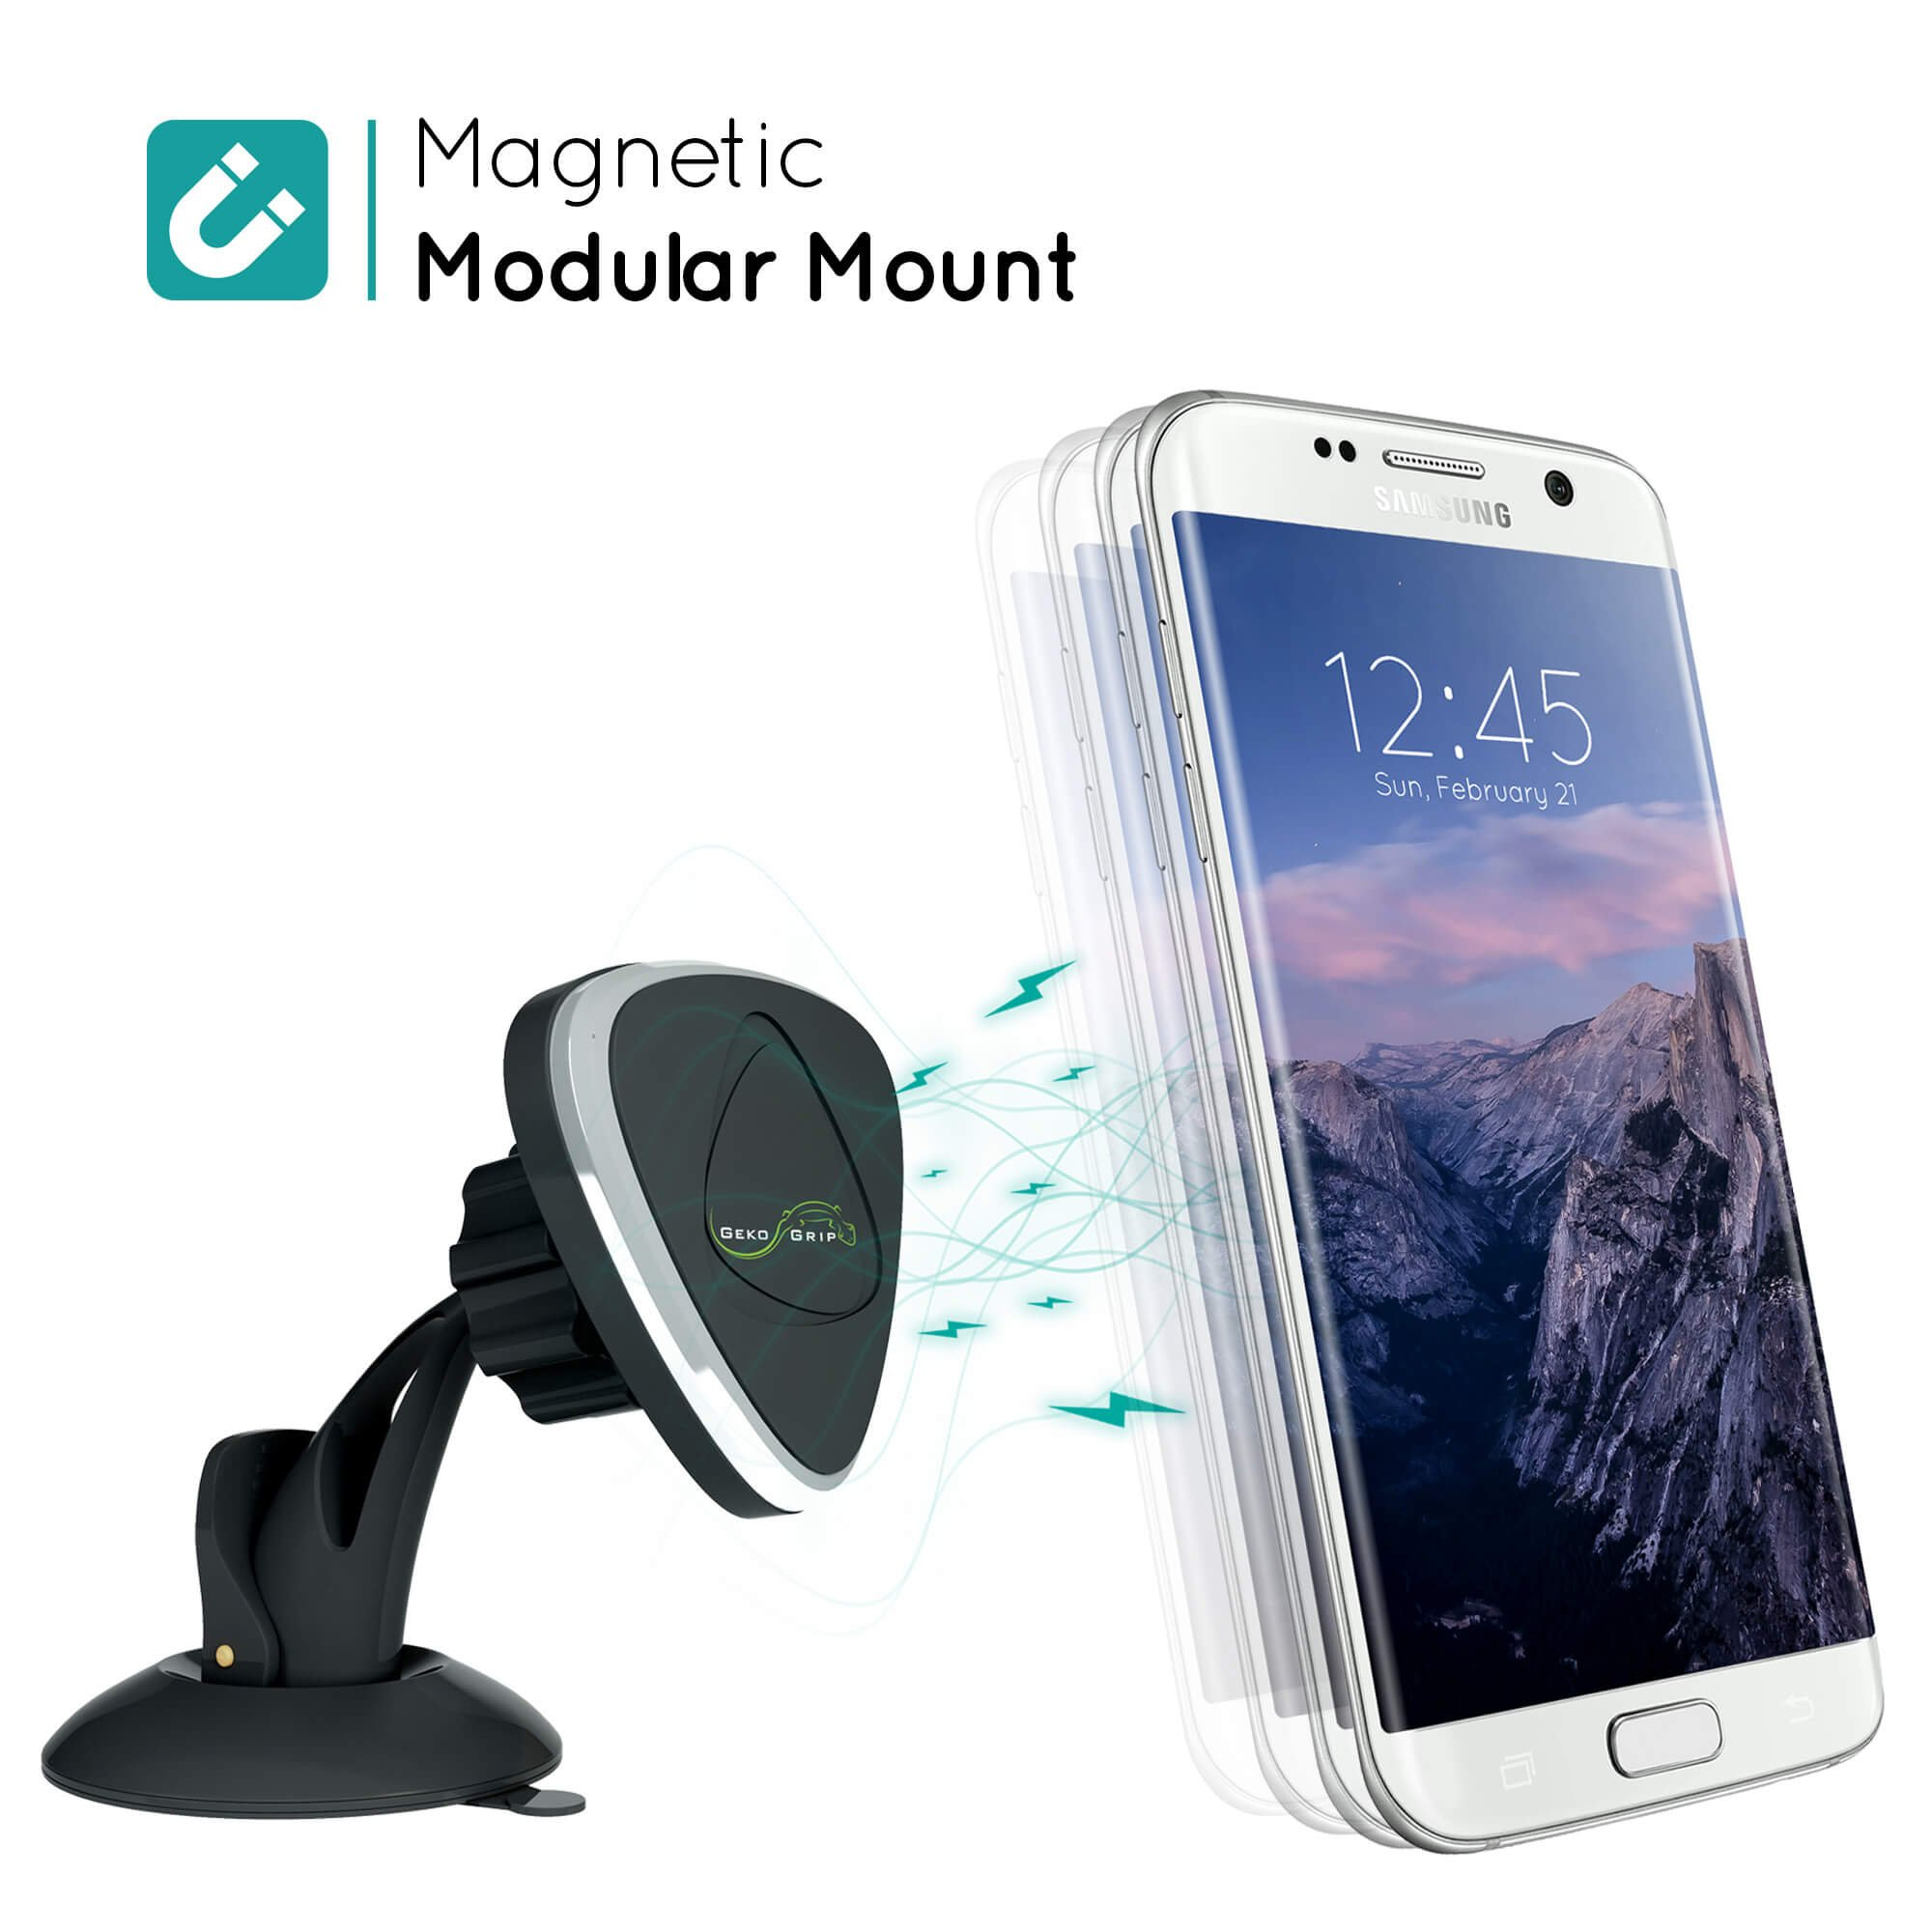 GekoGrip Magnetic Car Phone Holder - Strong Magnet Holds All iPhone & Android Smartphones & Mini Tablets | Drive Smart & Avoid Tickets for a Safe Experience | Universal Cradle-less Dashboard Mount